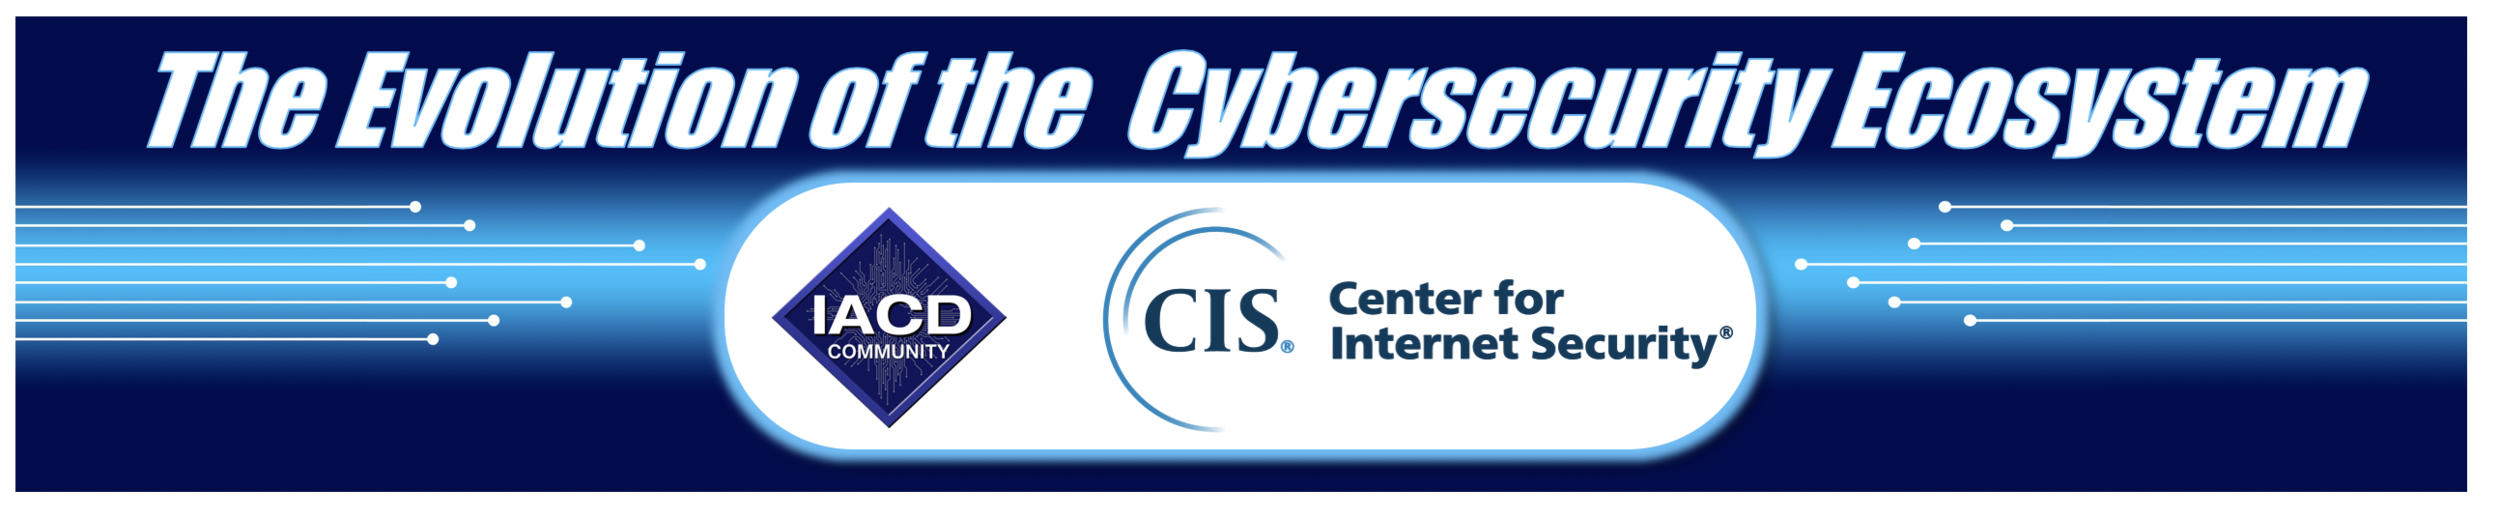 TheEvolutionOfTheCybersecurityEcosystem_Banner.png